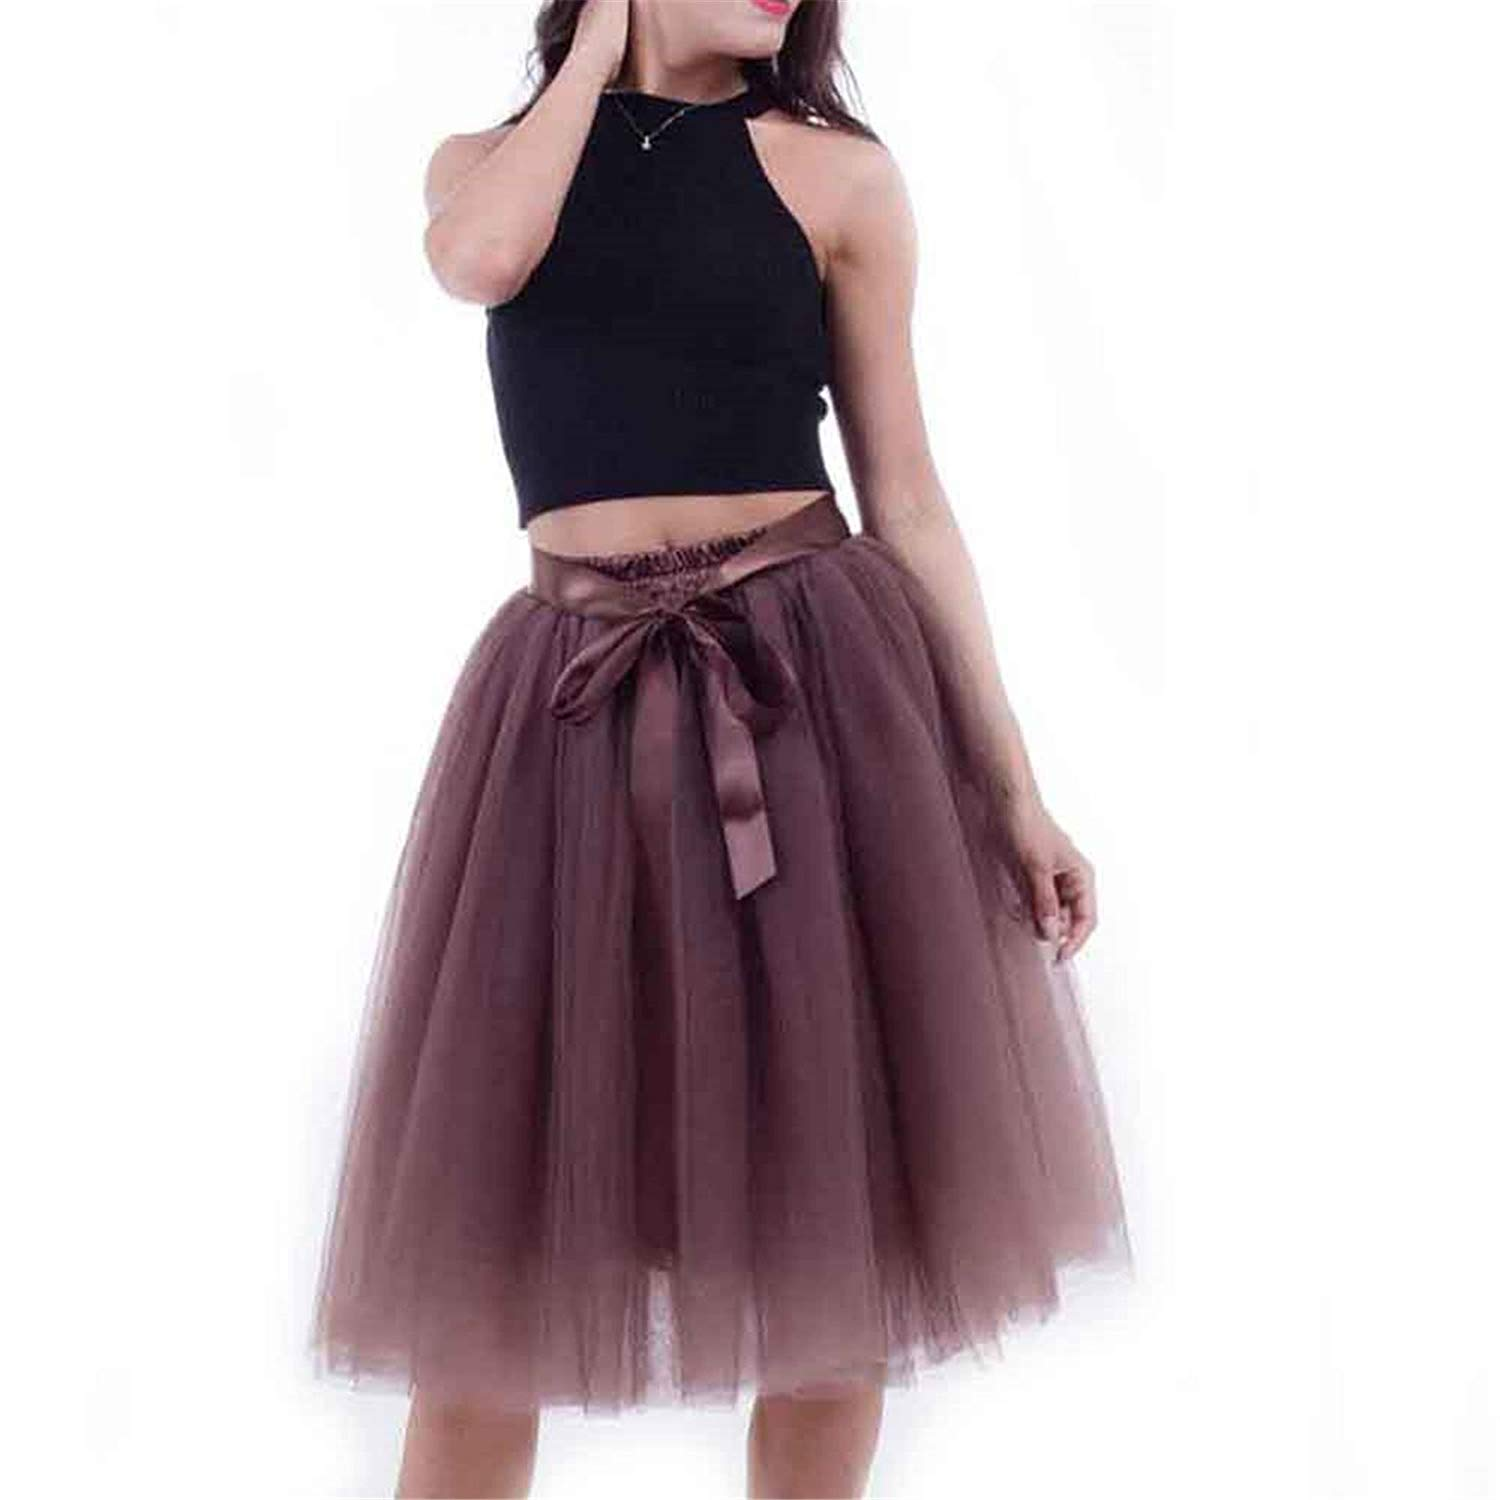 db8d34dc2a Get Quotations · Skirts Womens 6 Layers Midi Tulle Skirt Plus Size Women  Tutu Skirts Ball Gown Party Petticoat